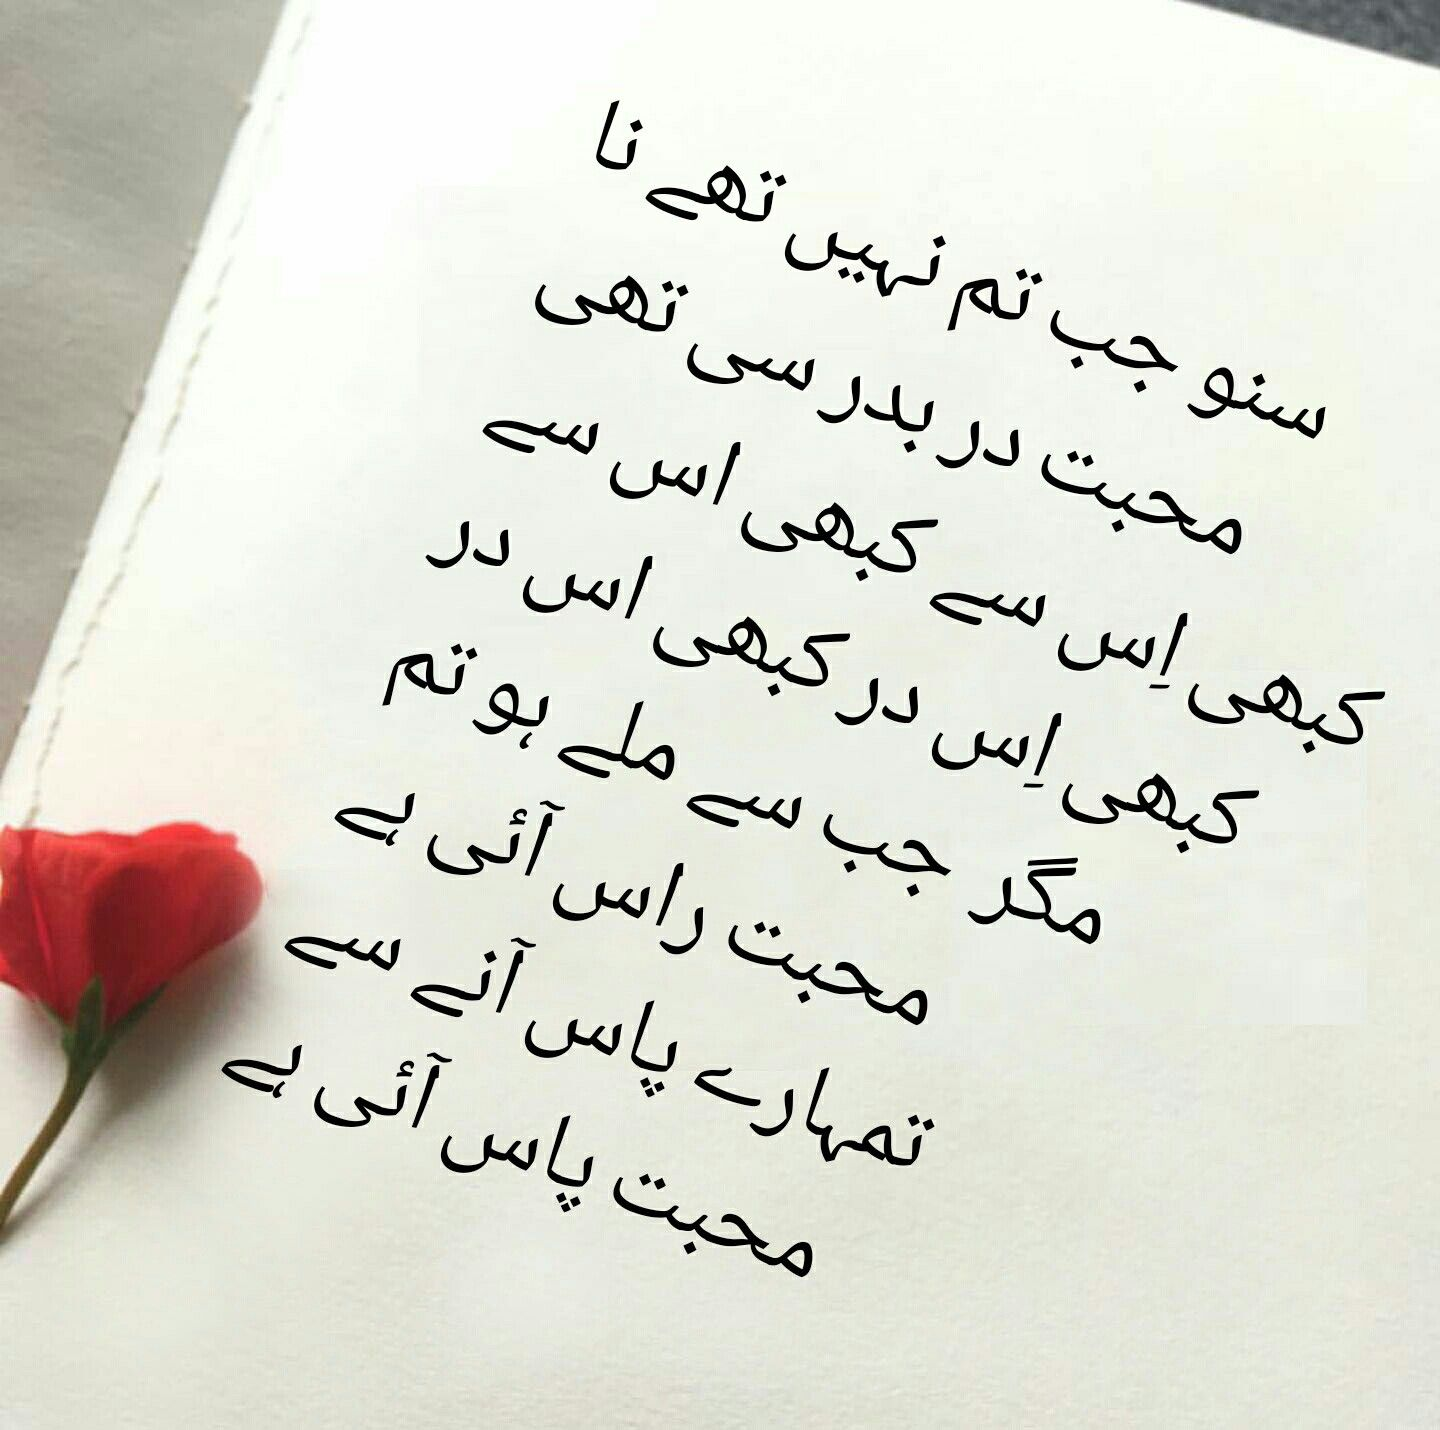 Pin By Binish Dawood On شاعری Romantic Poetry Urdu Poetry Romantic Relationship Quotes